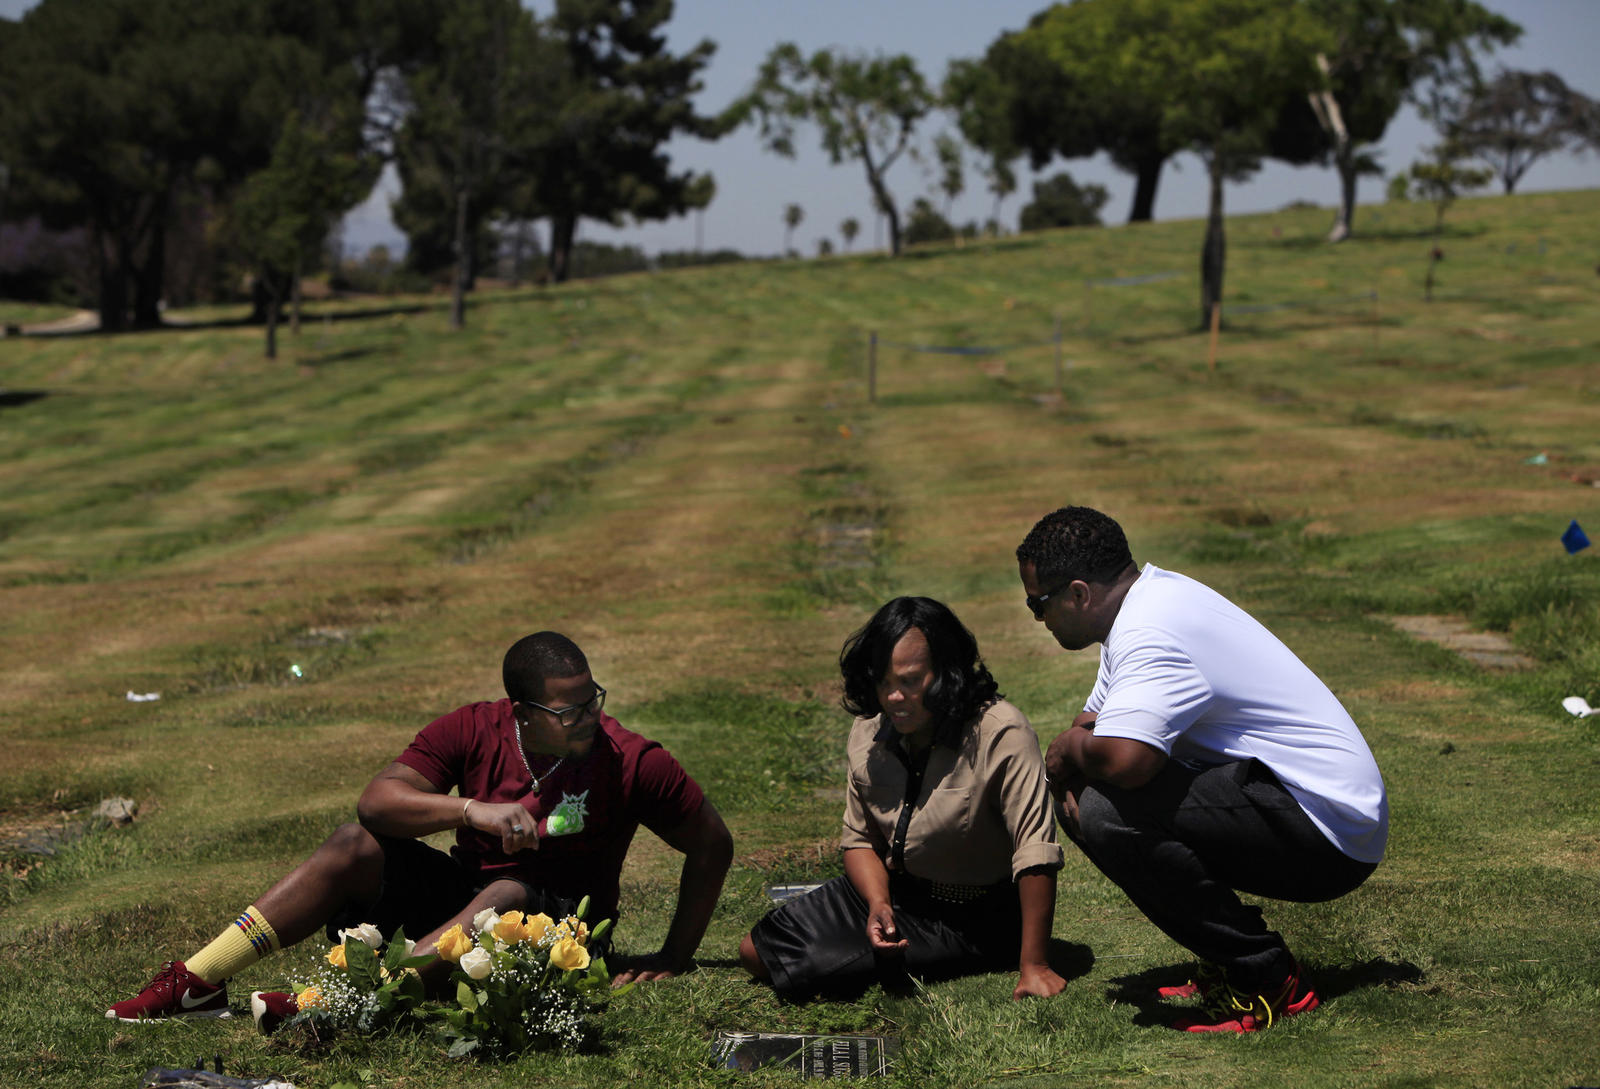 Atwan Williams, LaQuita Suggs and Solomon Ricks visit LaQuita mother's grave at the Inglewood Park Cemetery on the seventh anniversary of her death. LaQuita's mother Ella Suggs was stabbed multiple times and died April 29, 2007.